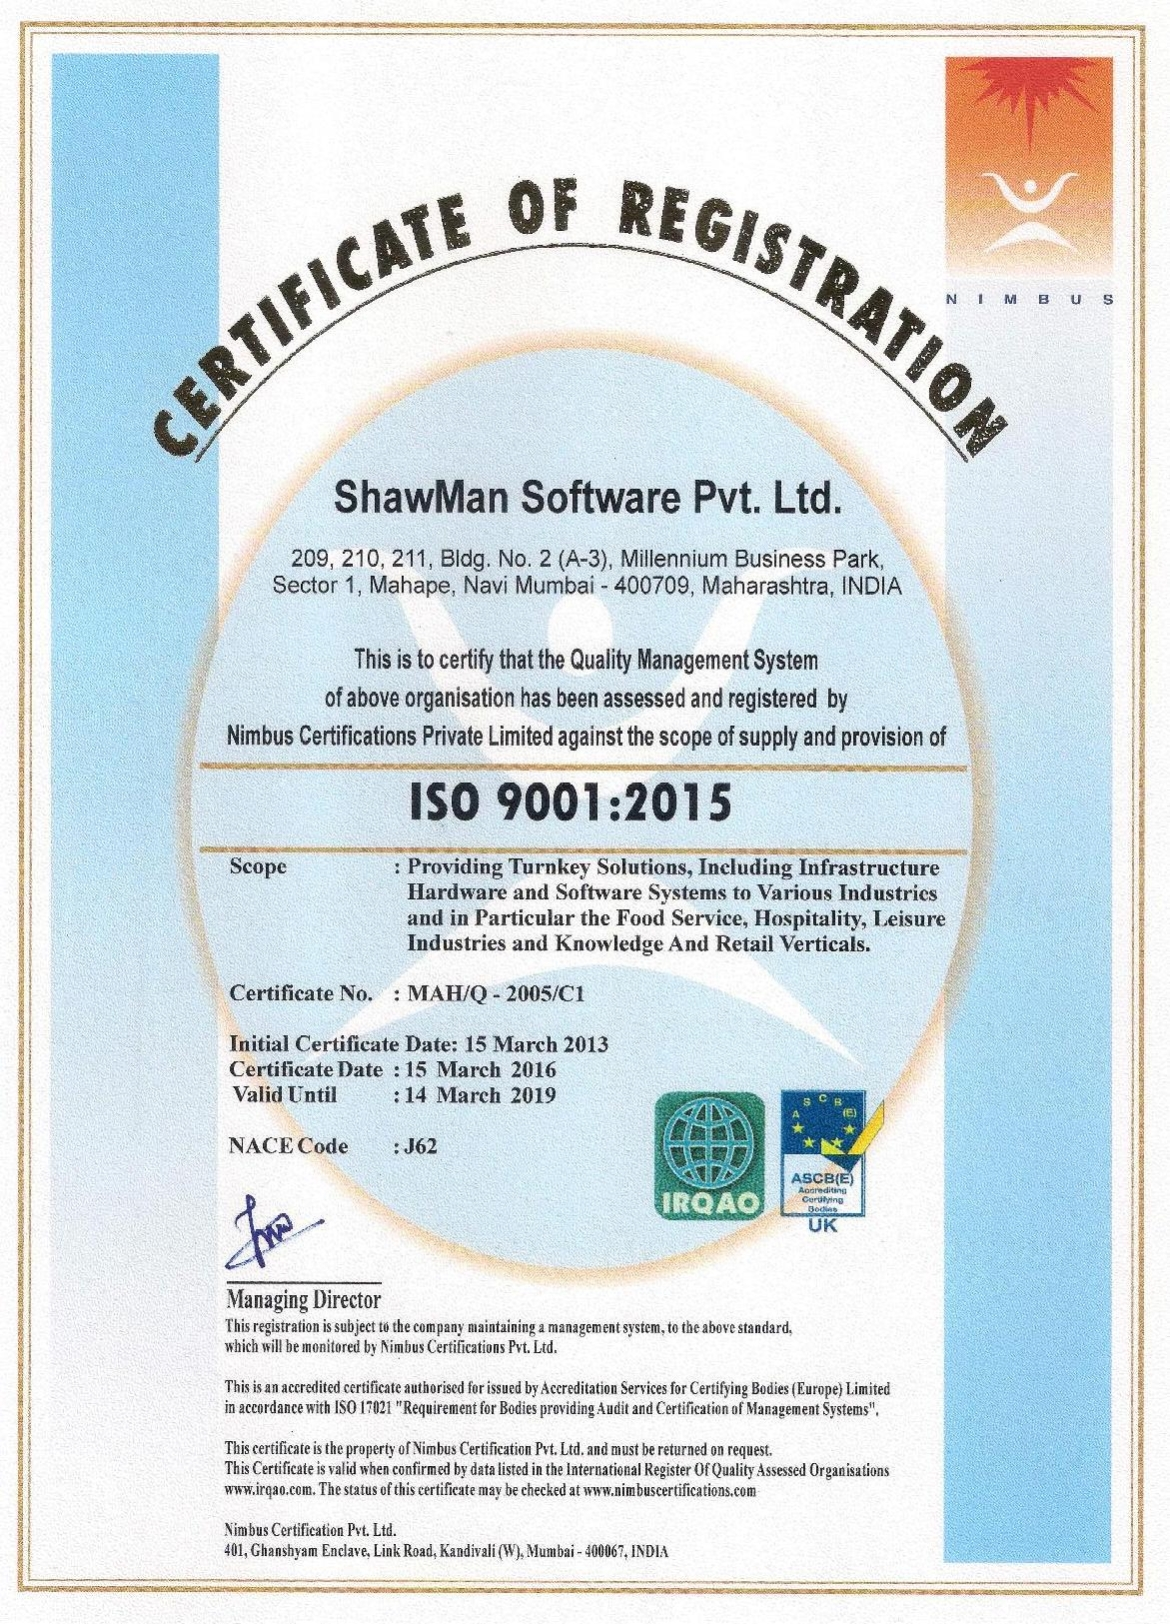 2005-C1-ShawMan-Software-Pvt.-Ltd.-page-001.jpg